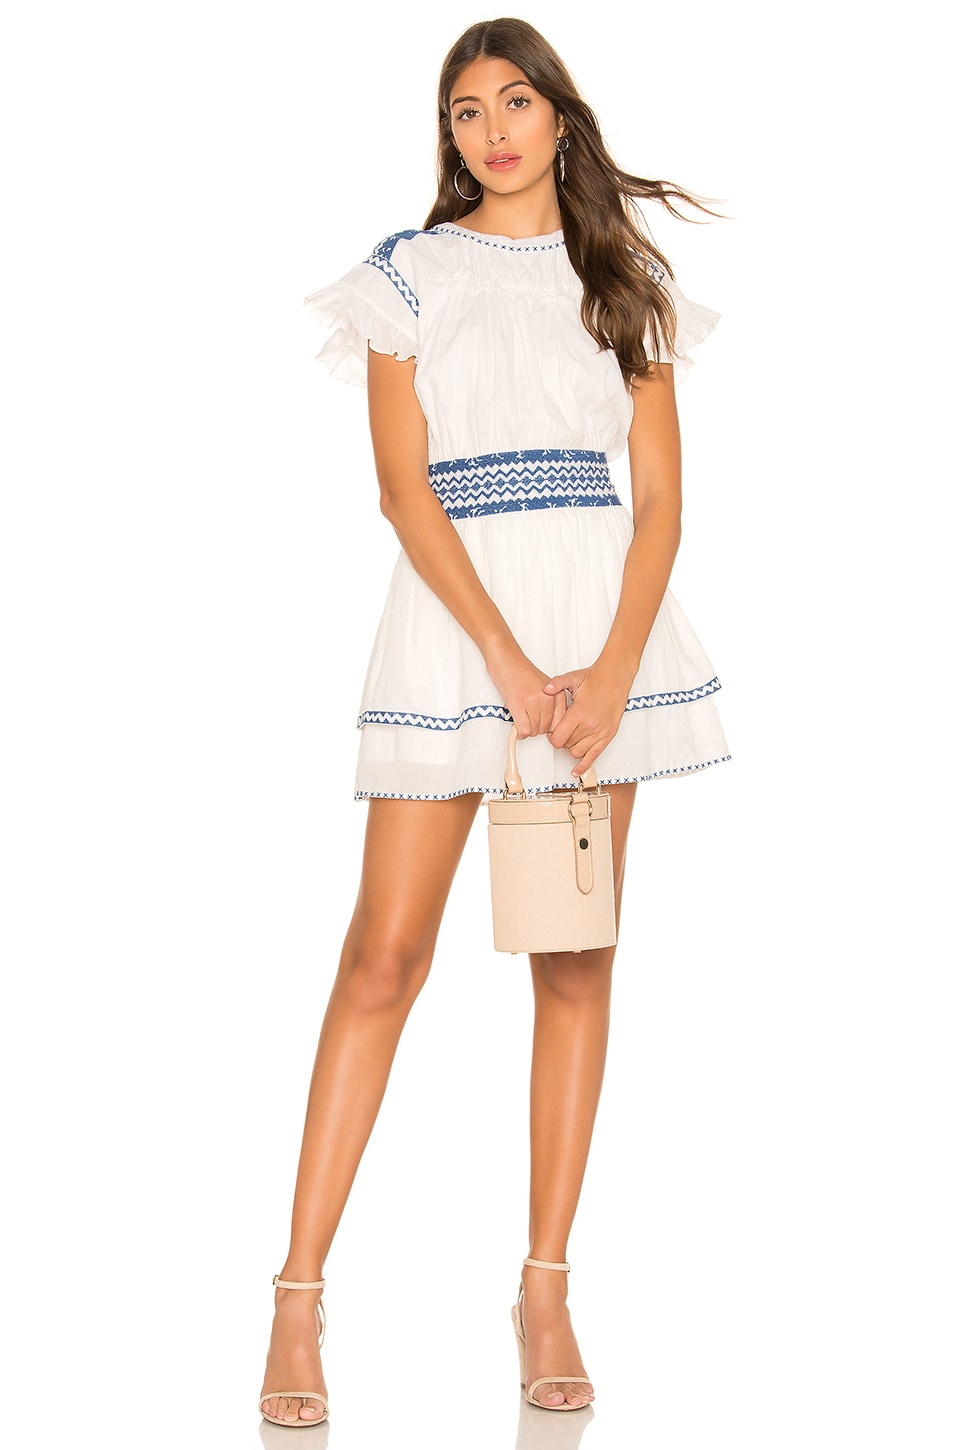 Tularosa Brielle Dress in Ivory & Blue